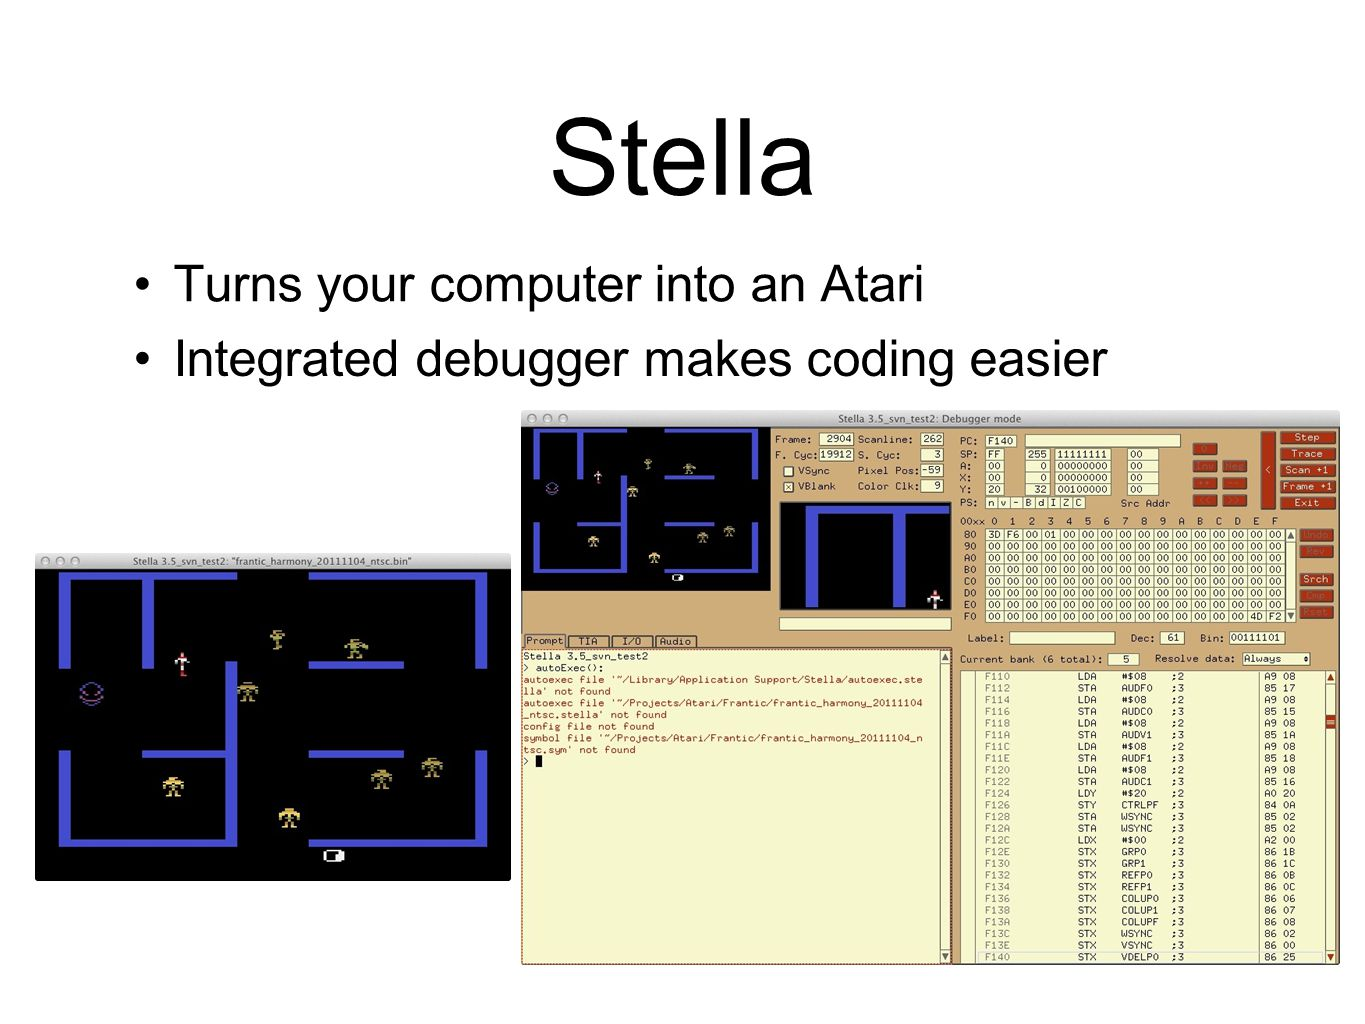 Stella Turns your computer into an Atari